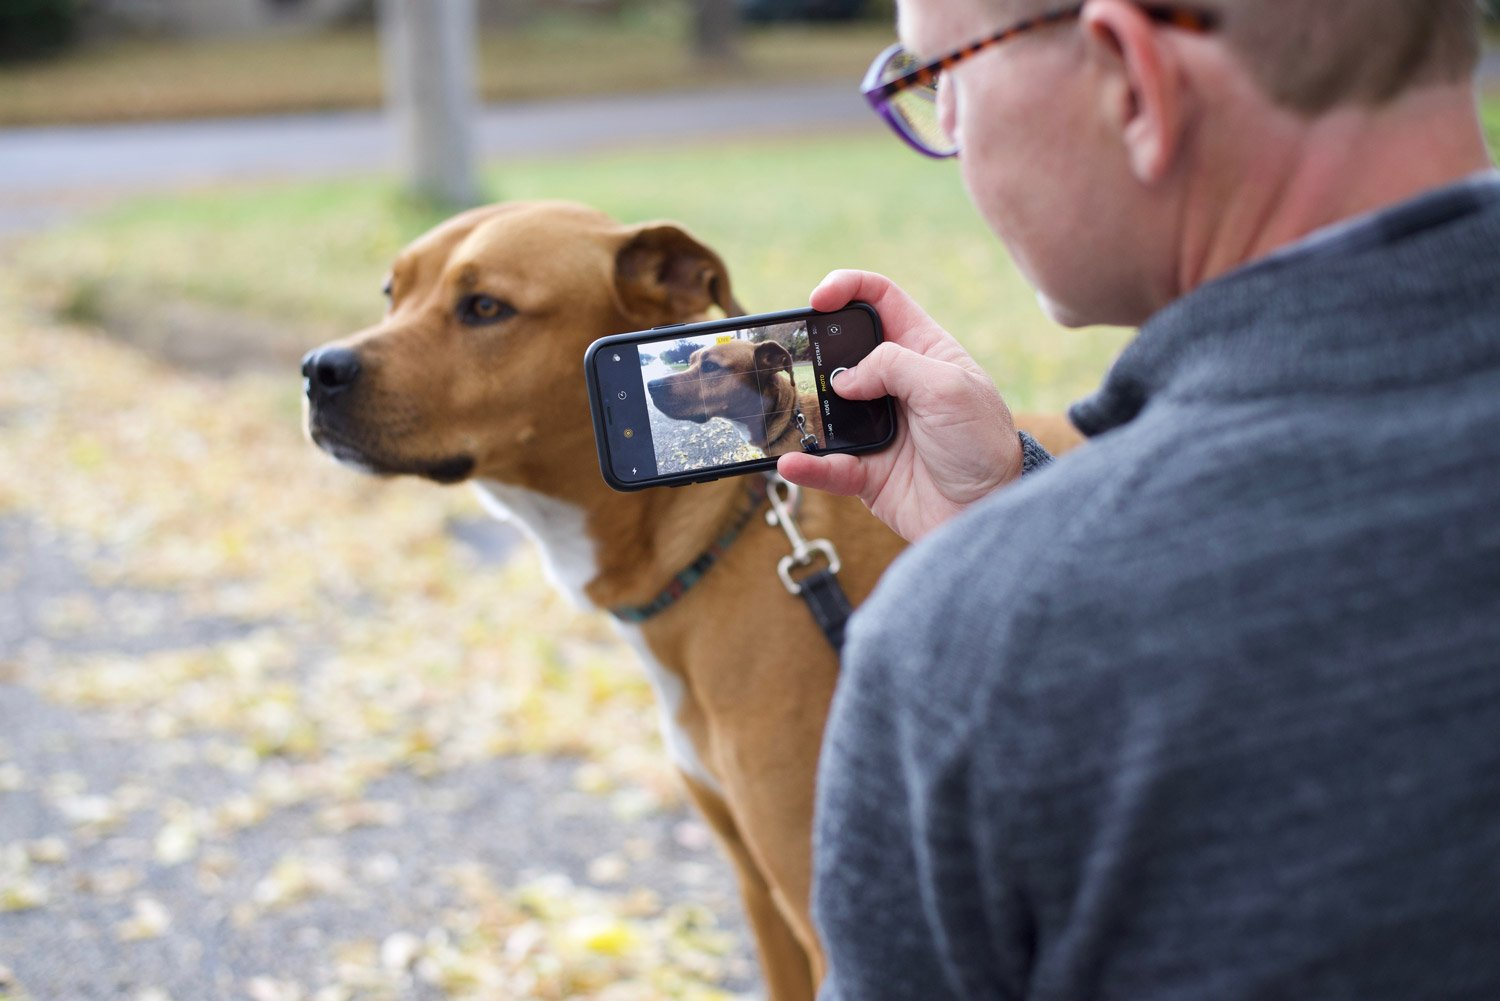 Away-home-and-pet-dog-cellphone